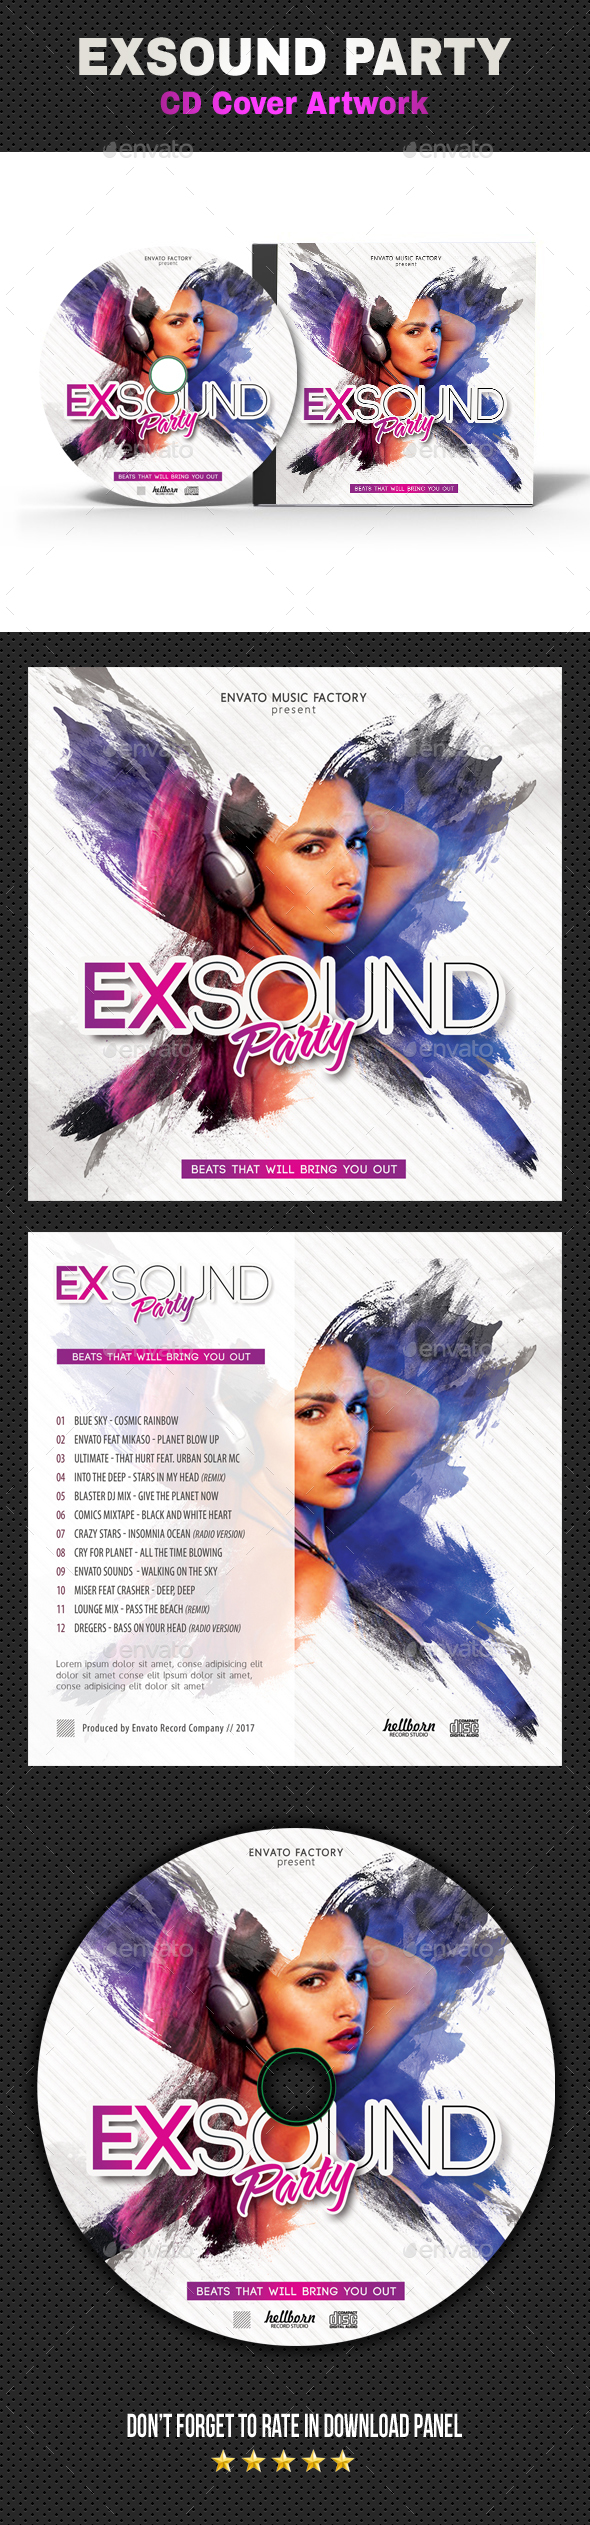 Exsound Music CD Cover - CD & DVD Artwork Print Templates